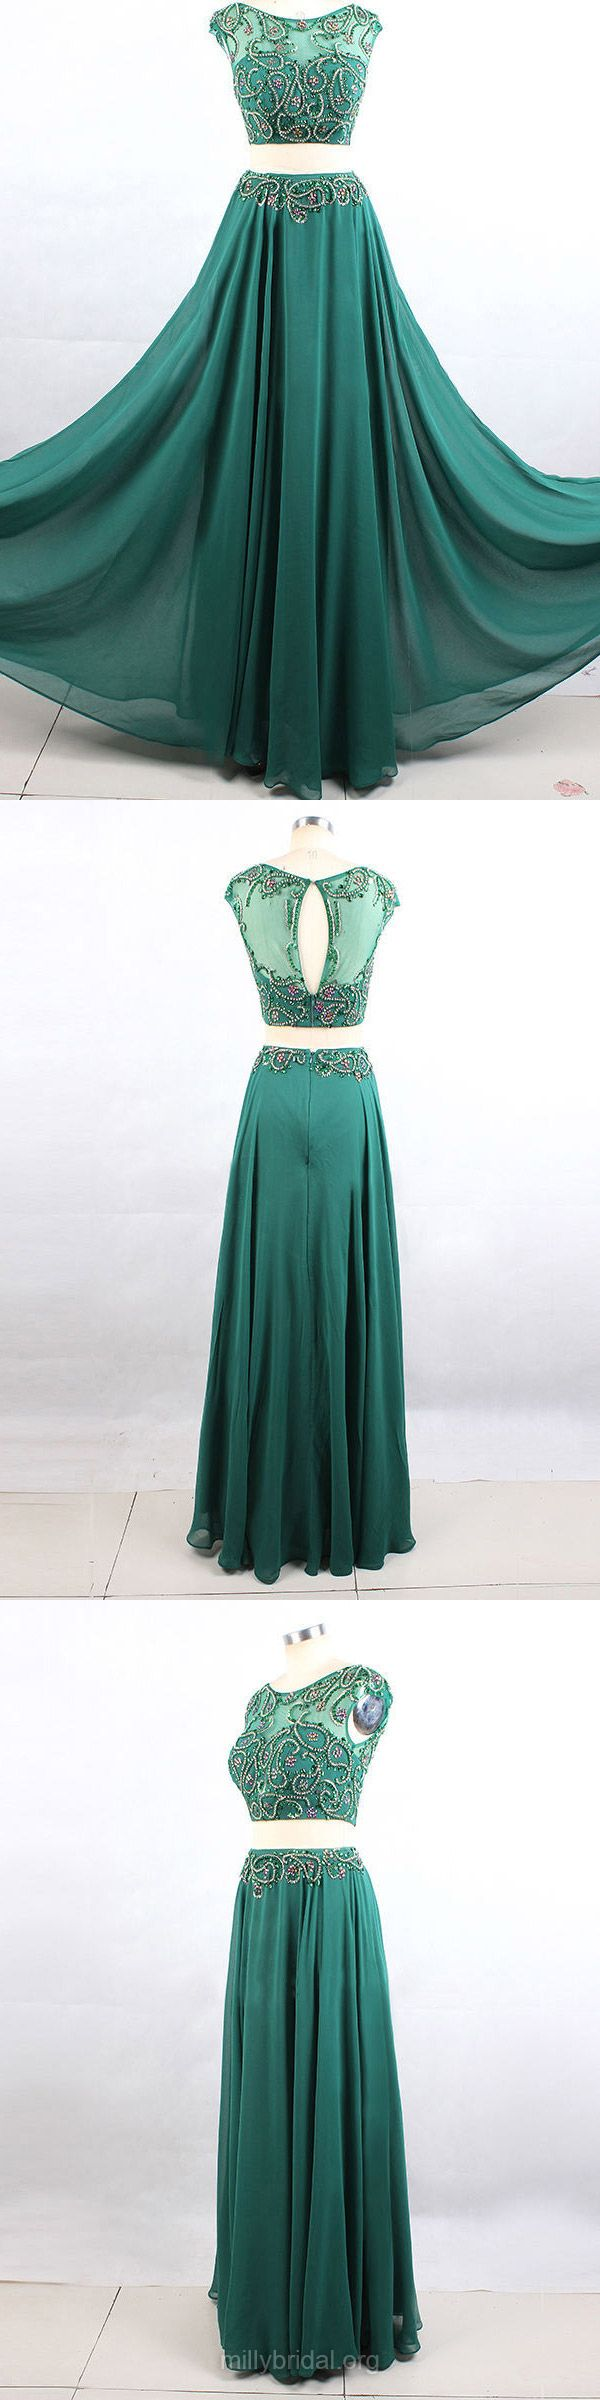 Two Piece Prom Dresses Green, Long Party Dresses A-line, Scoop Neck Formal Dresses Chiffon, Tulle Evening Dresses Beading